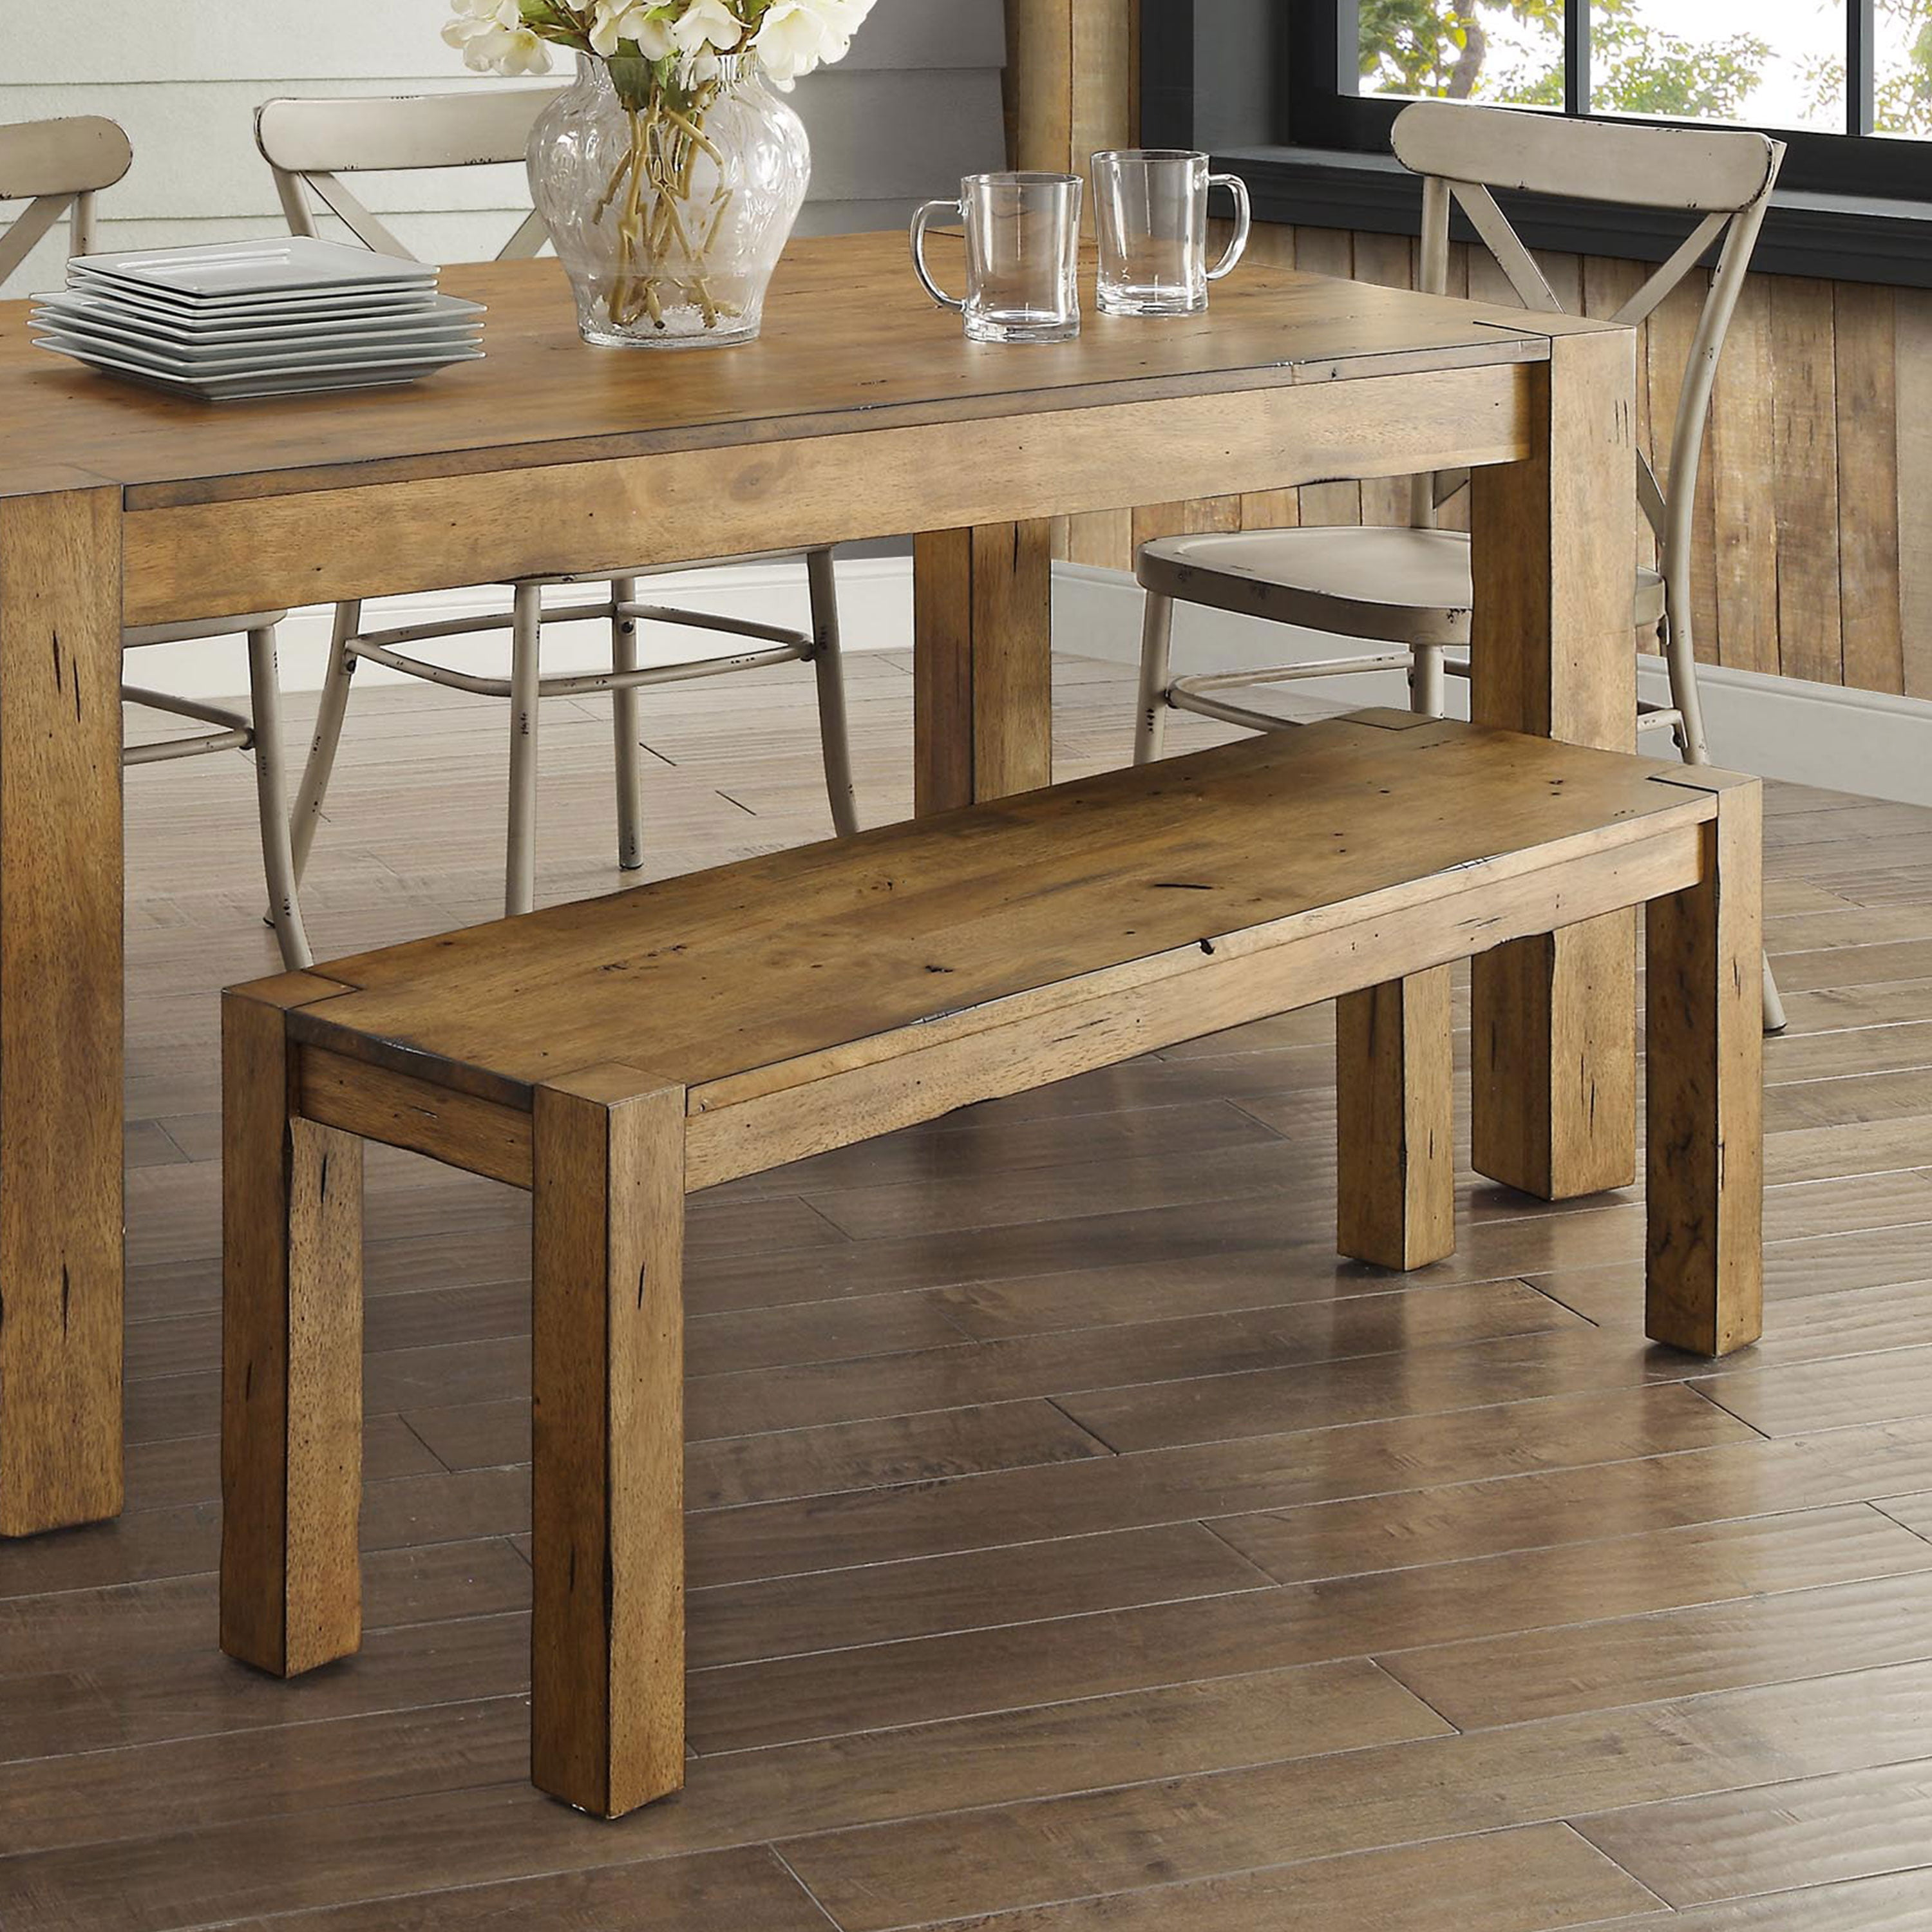 Better Homes U0026 Gardens Bryant Solid Wood Dining Bench, Rustic Brown